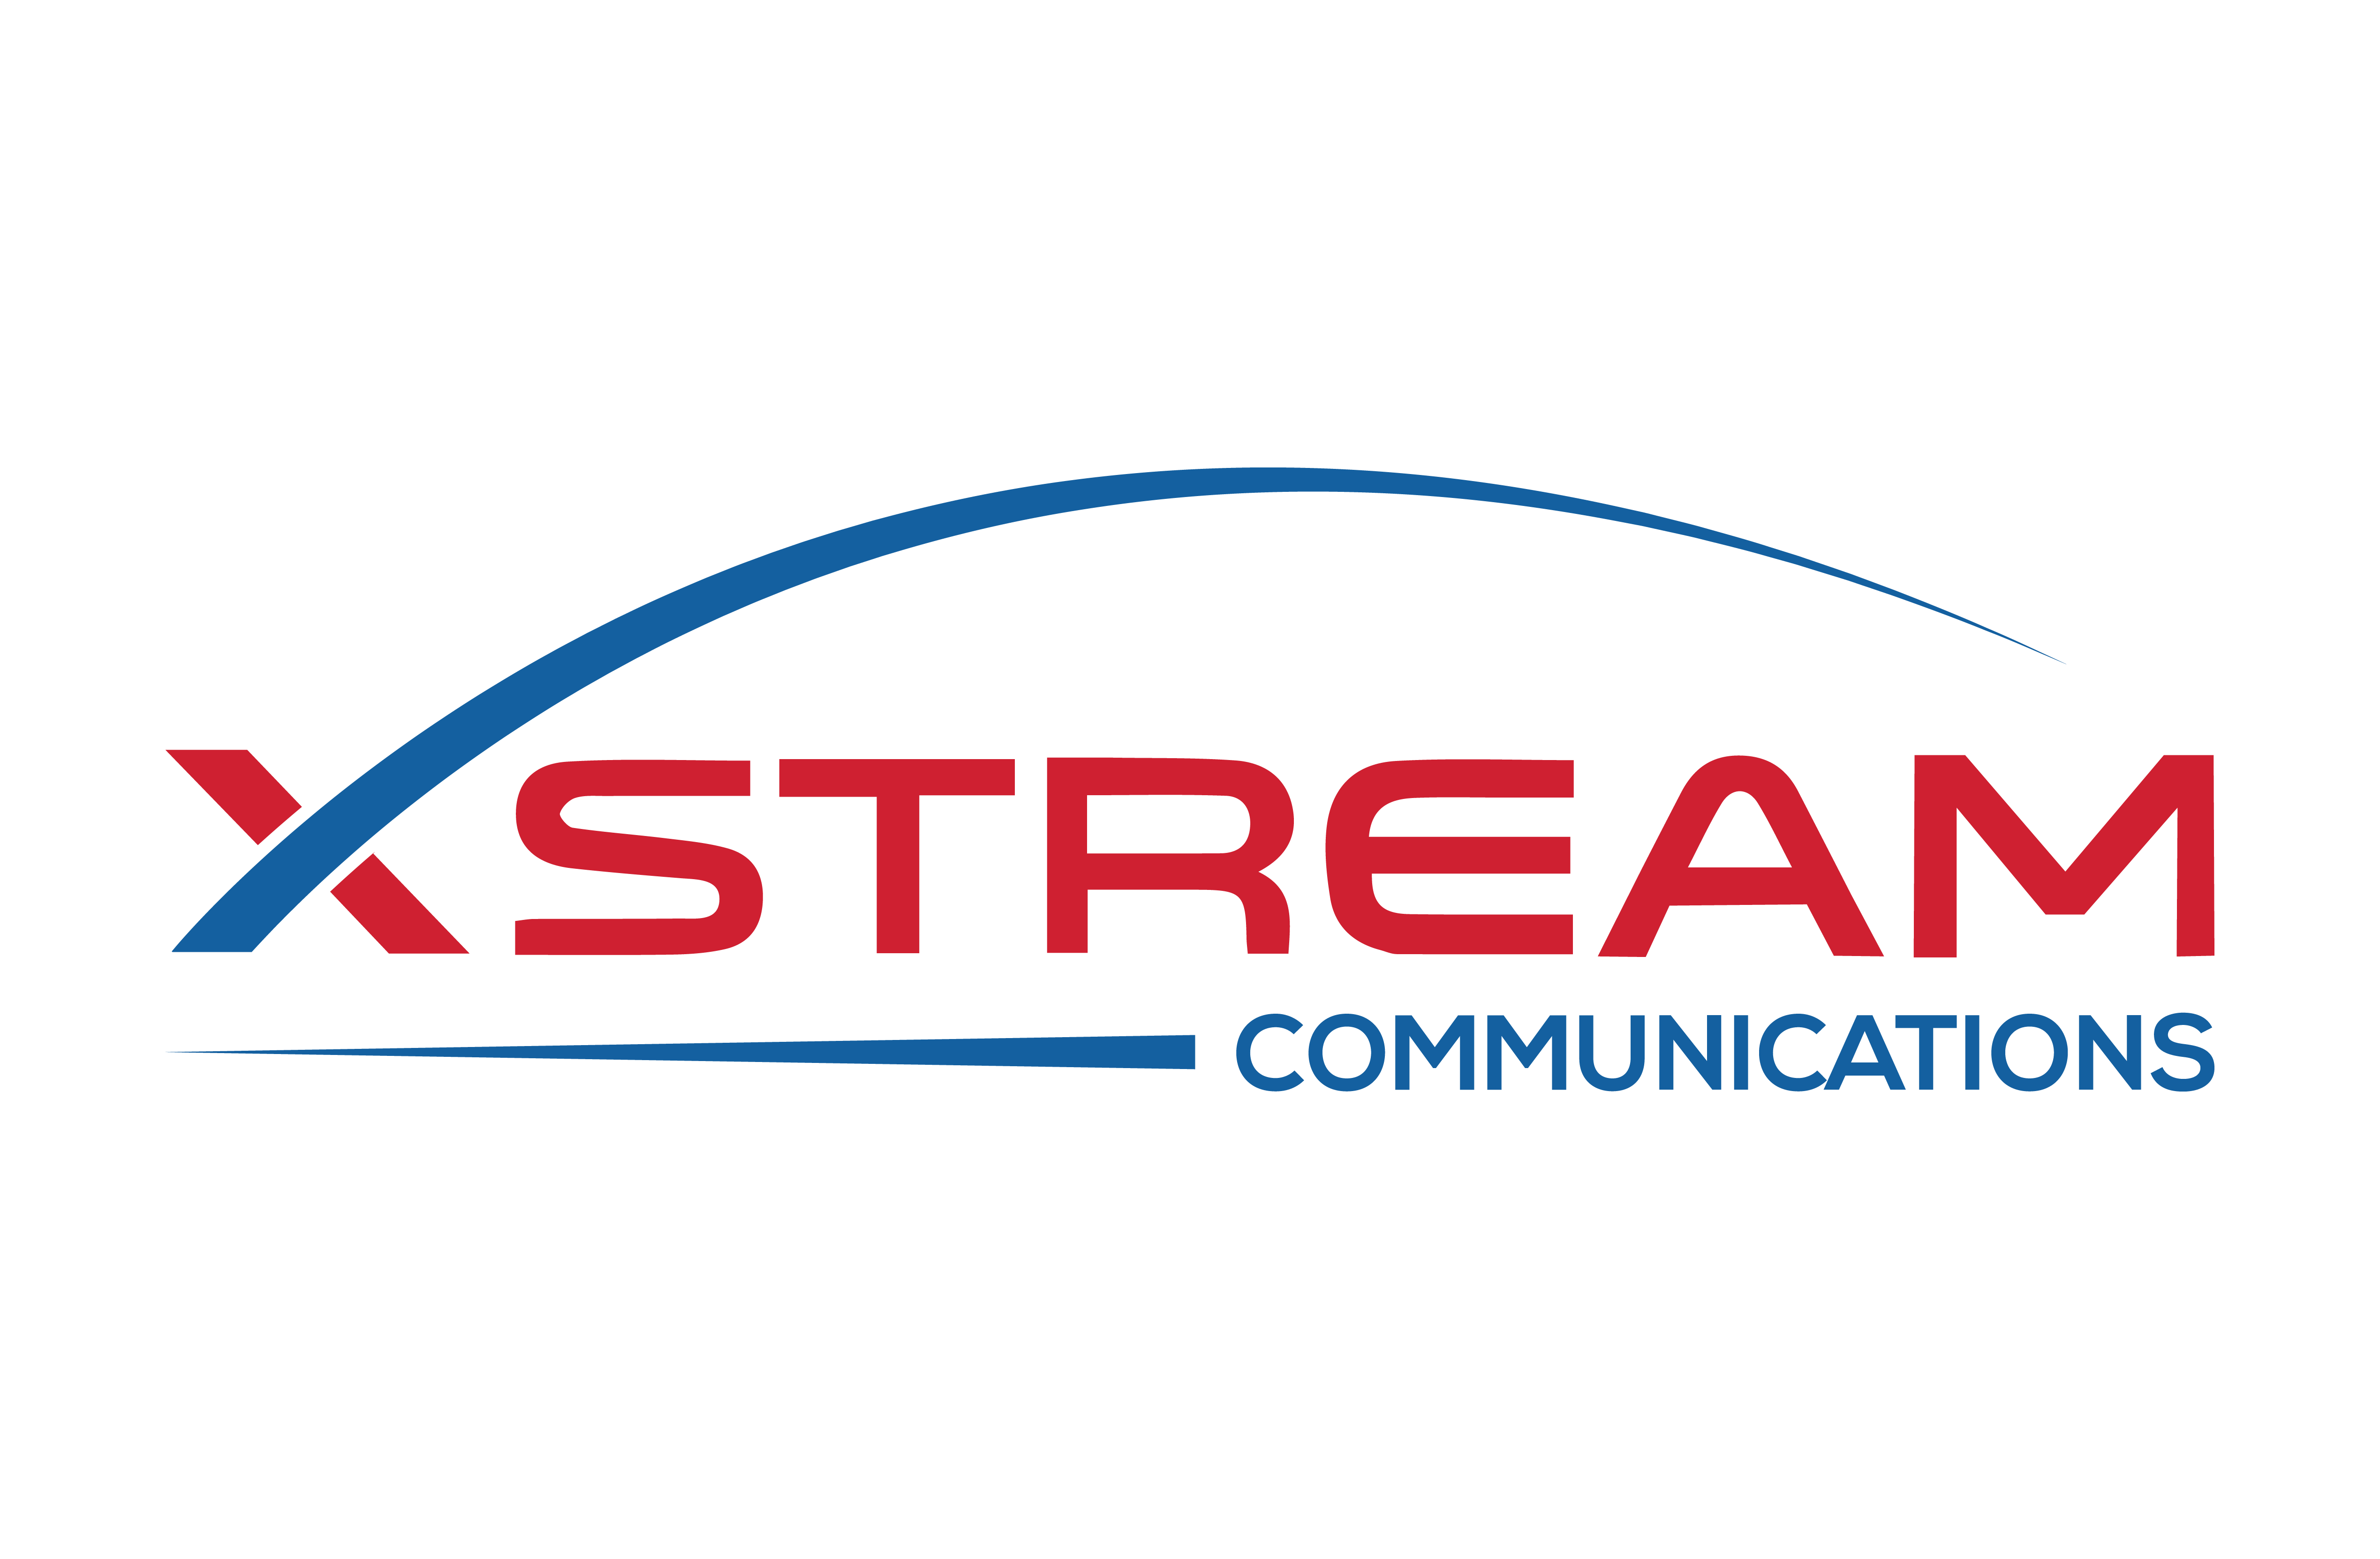 XStream Communications - Internet and Phone Services